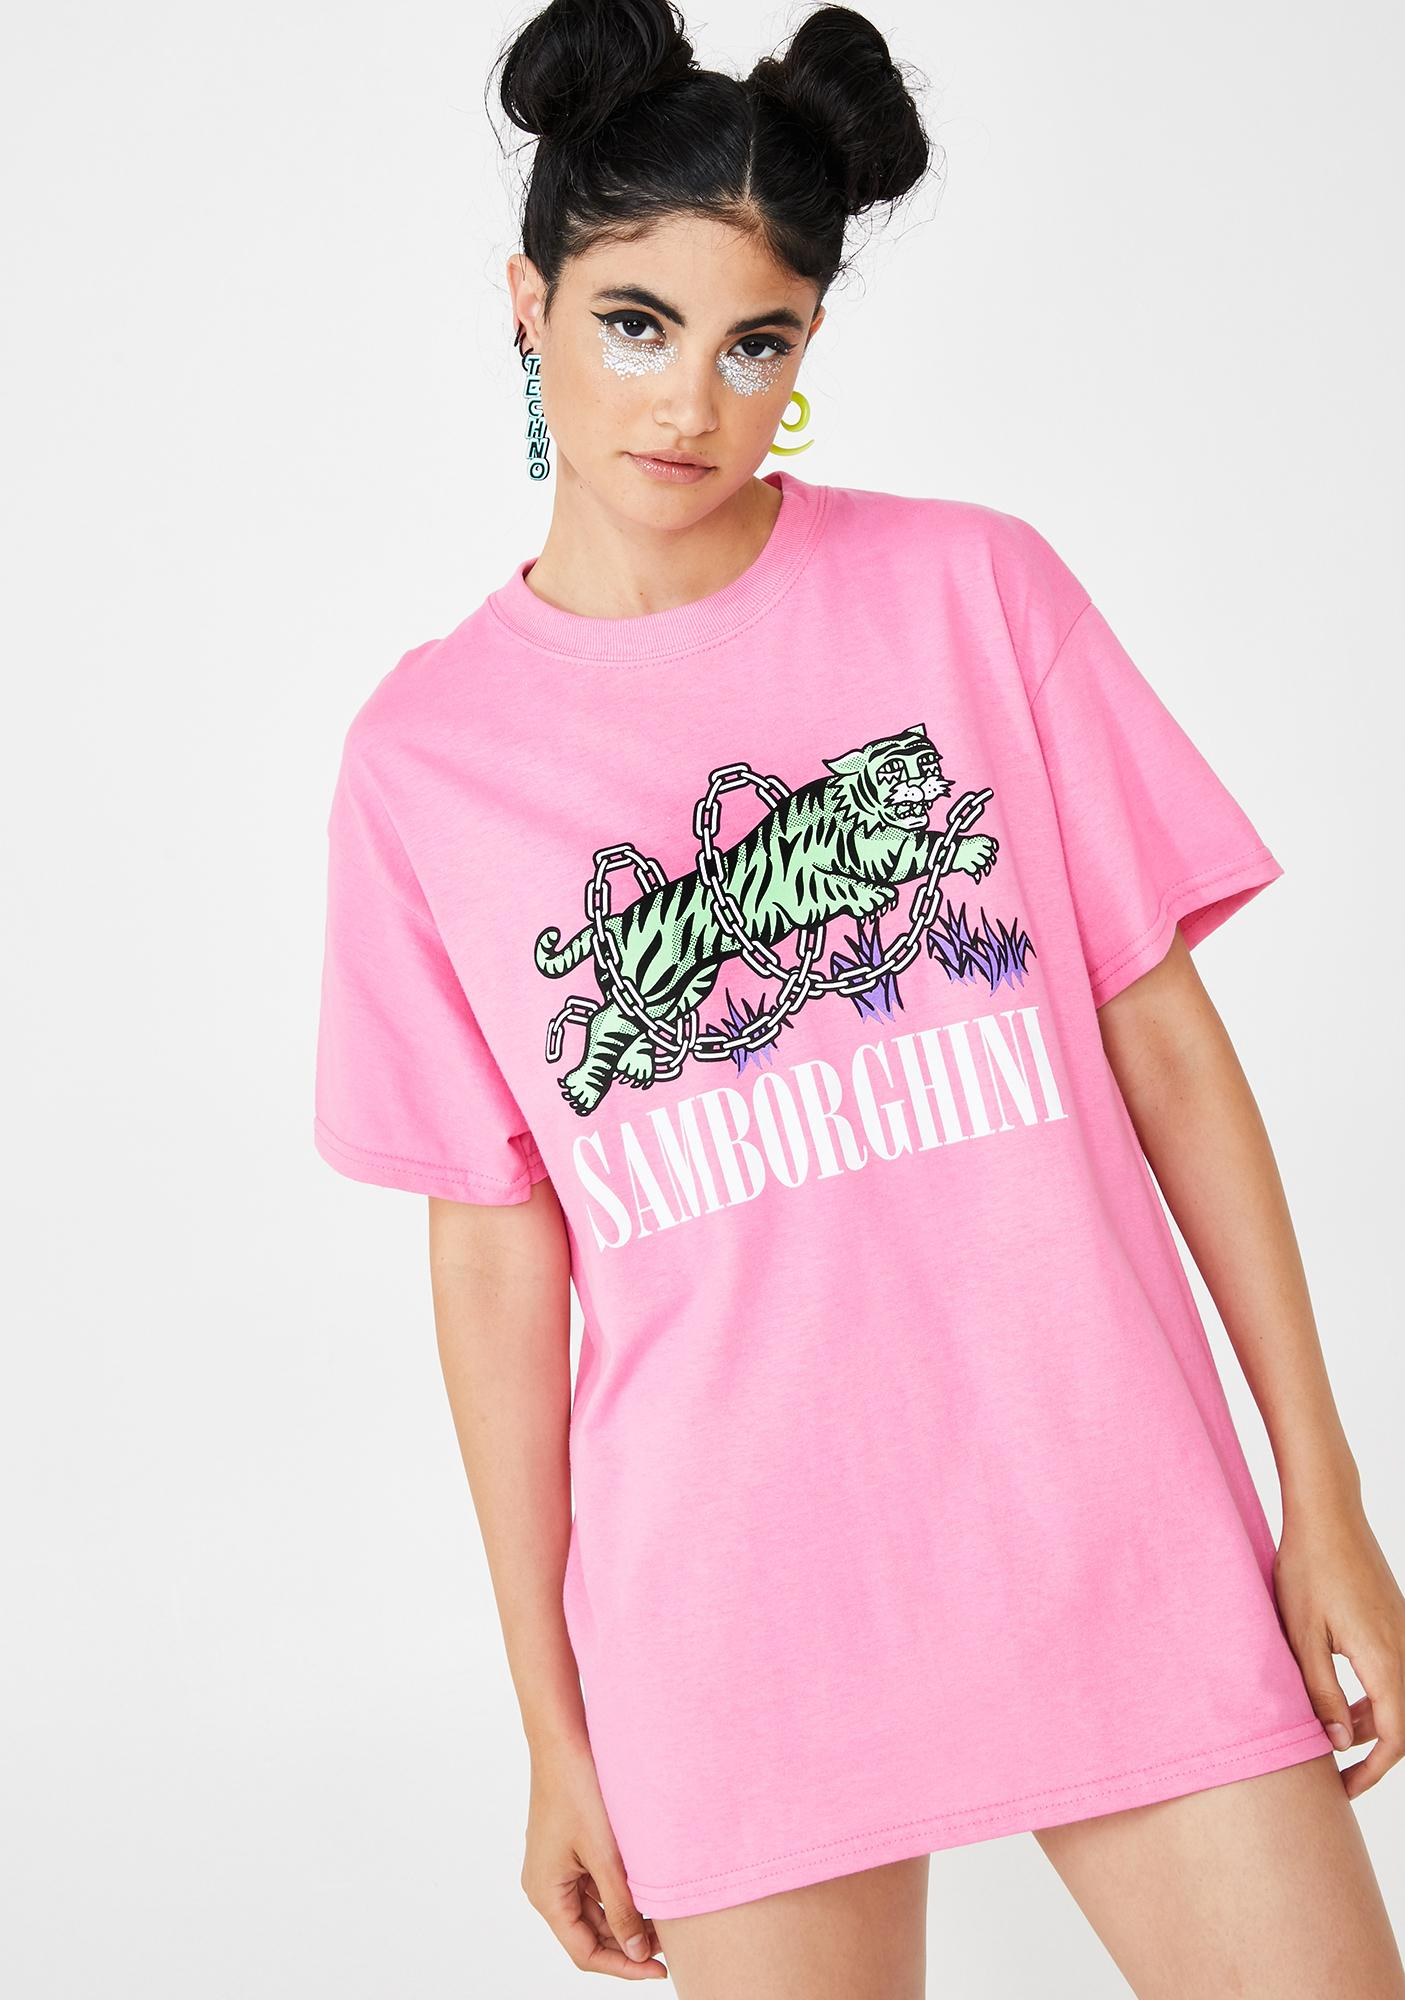 Samborghini Tiger Chains Graphic Tee